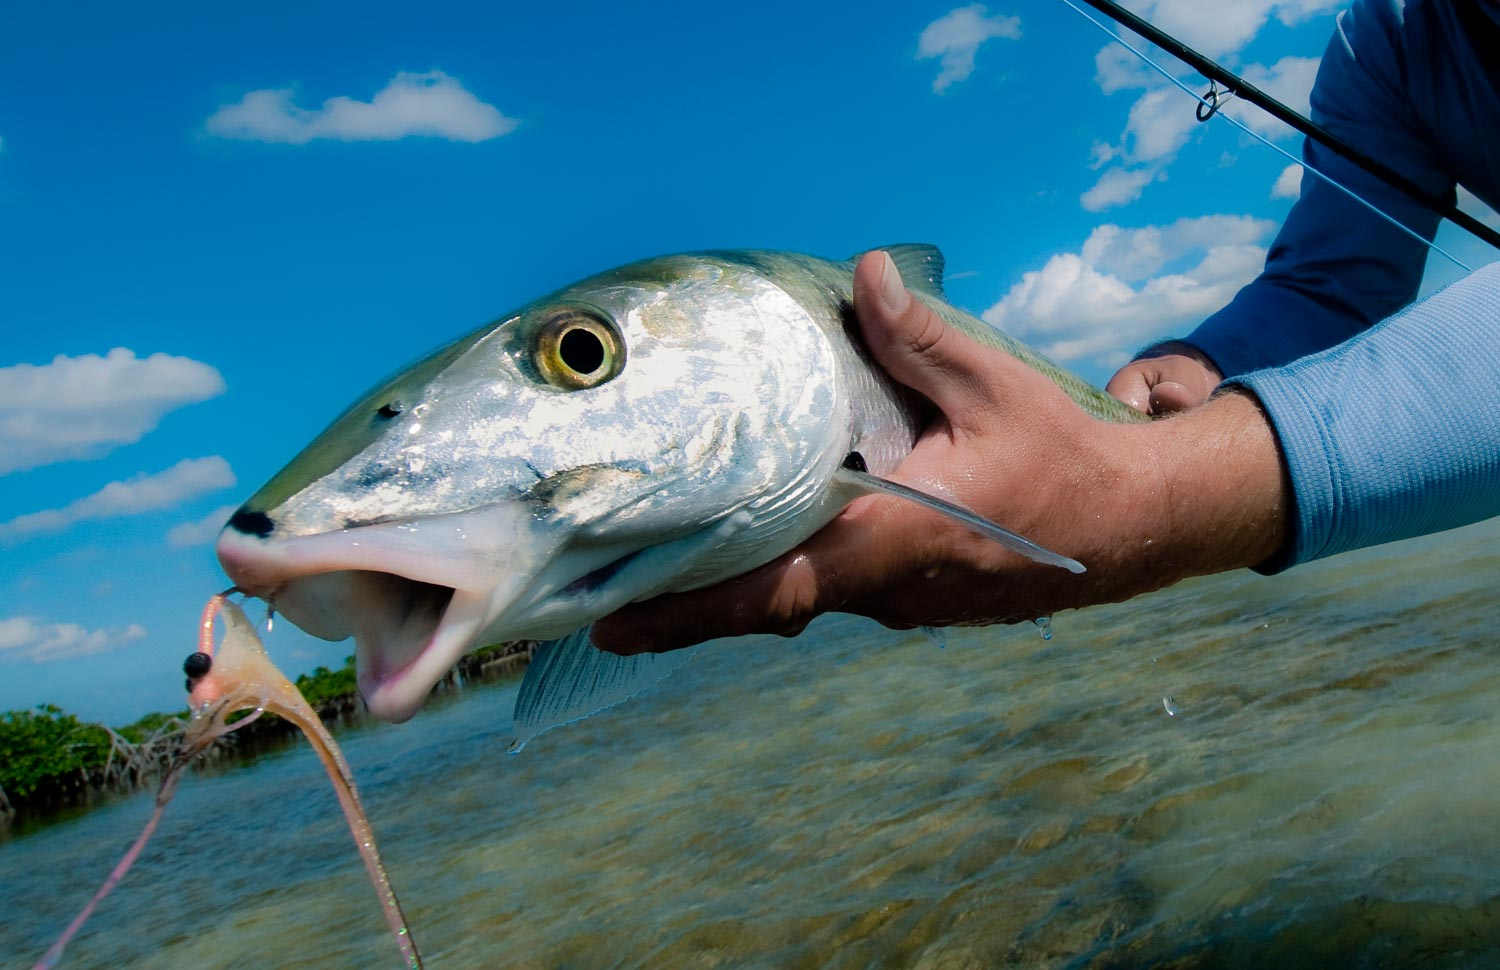 Diy bahamas bonefish with the family fly fishing gink and got cha photo by louis cahill solutioingenieria Images